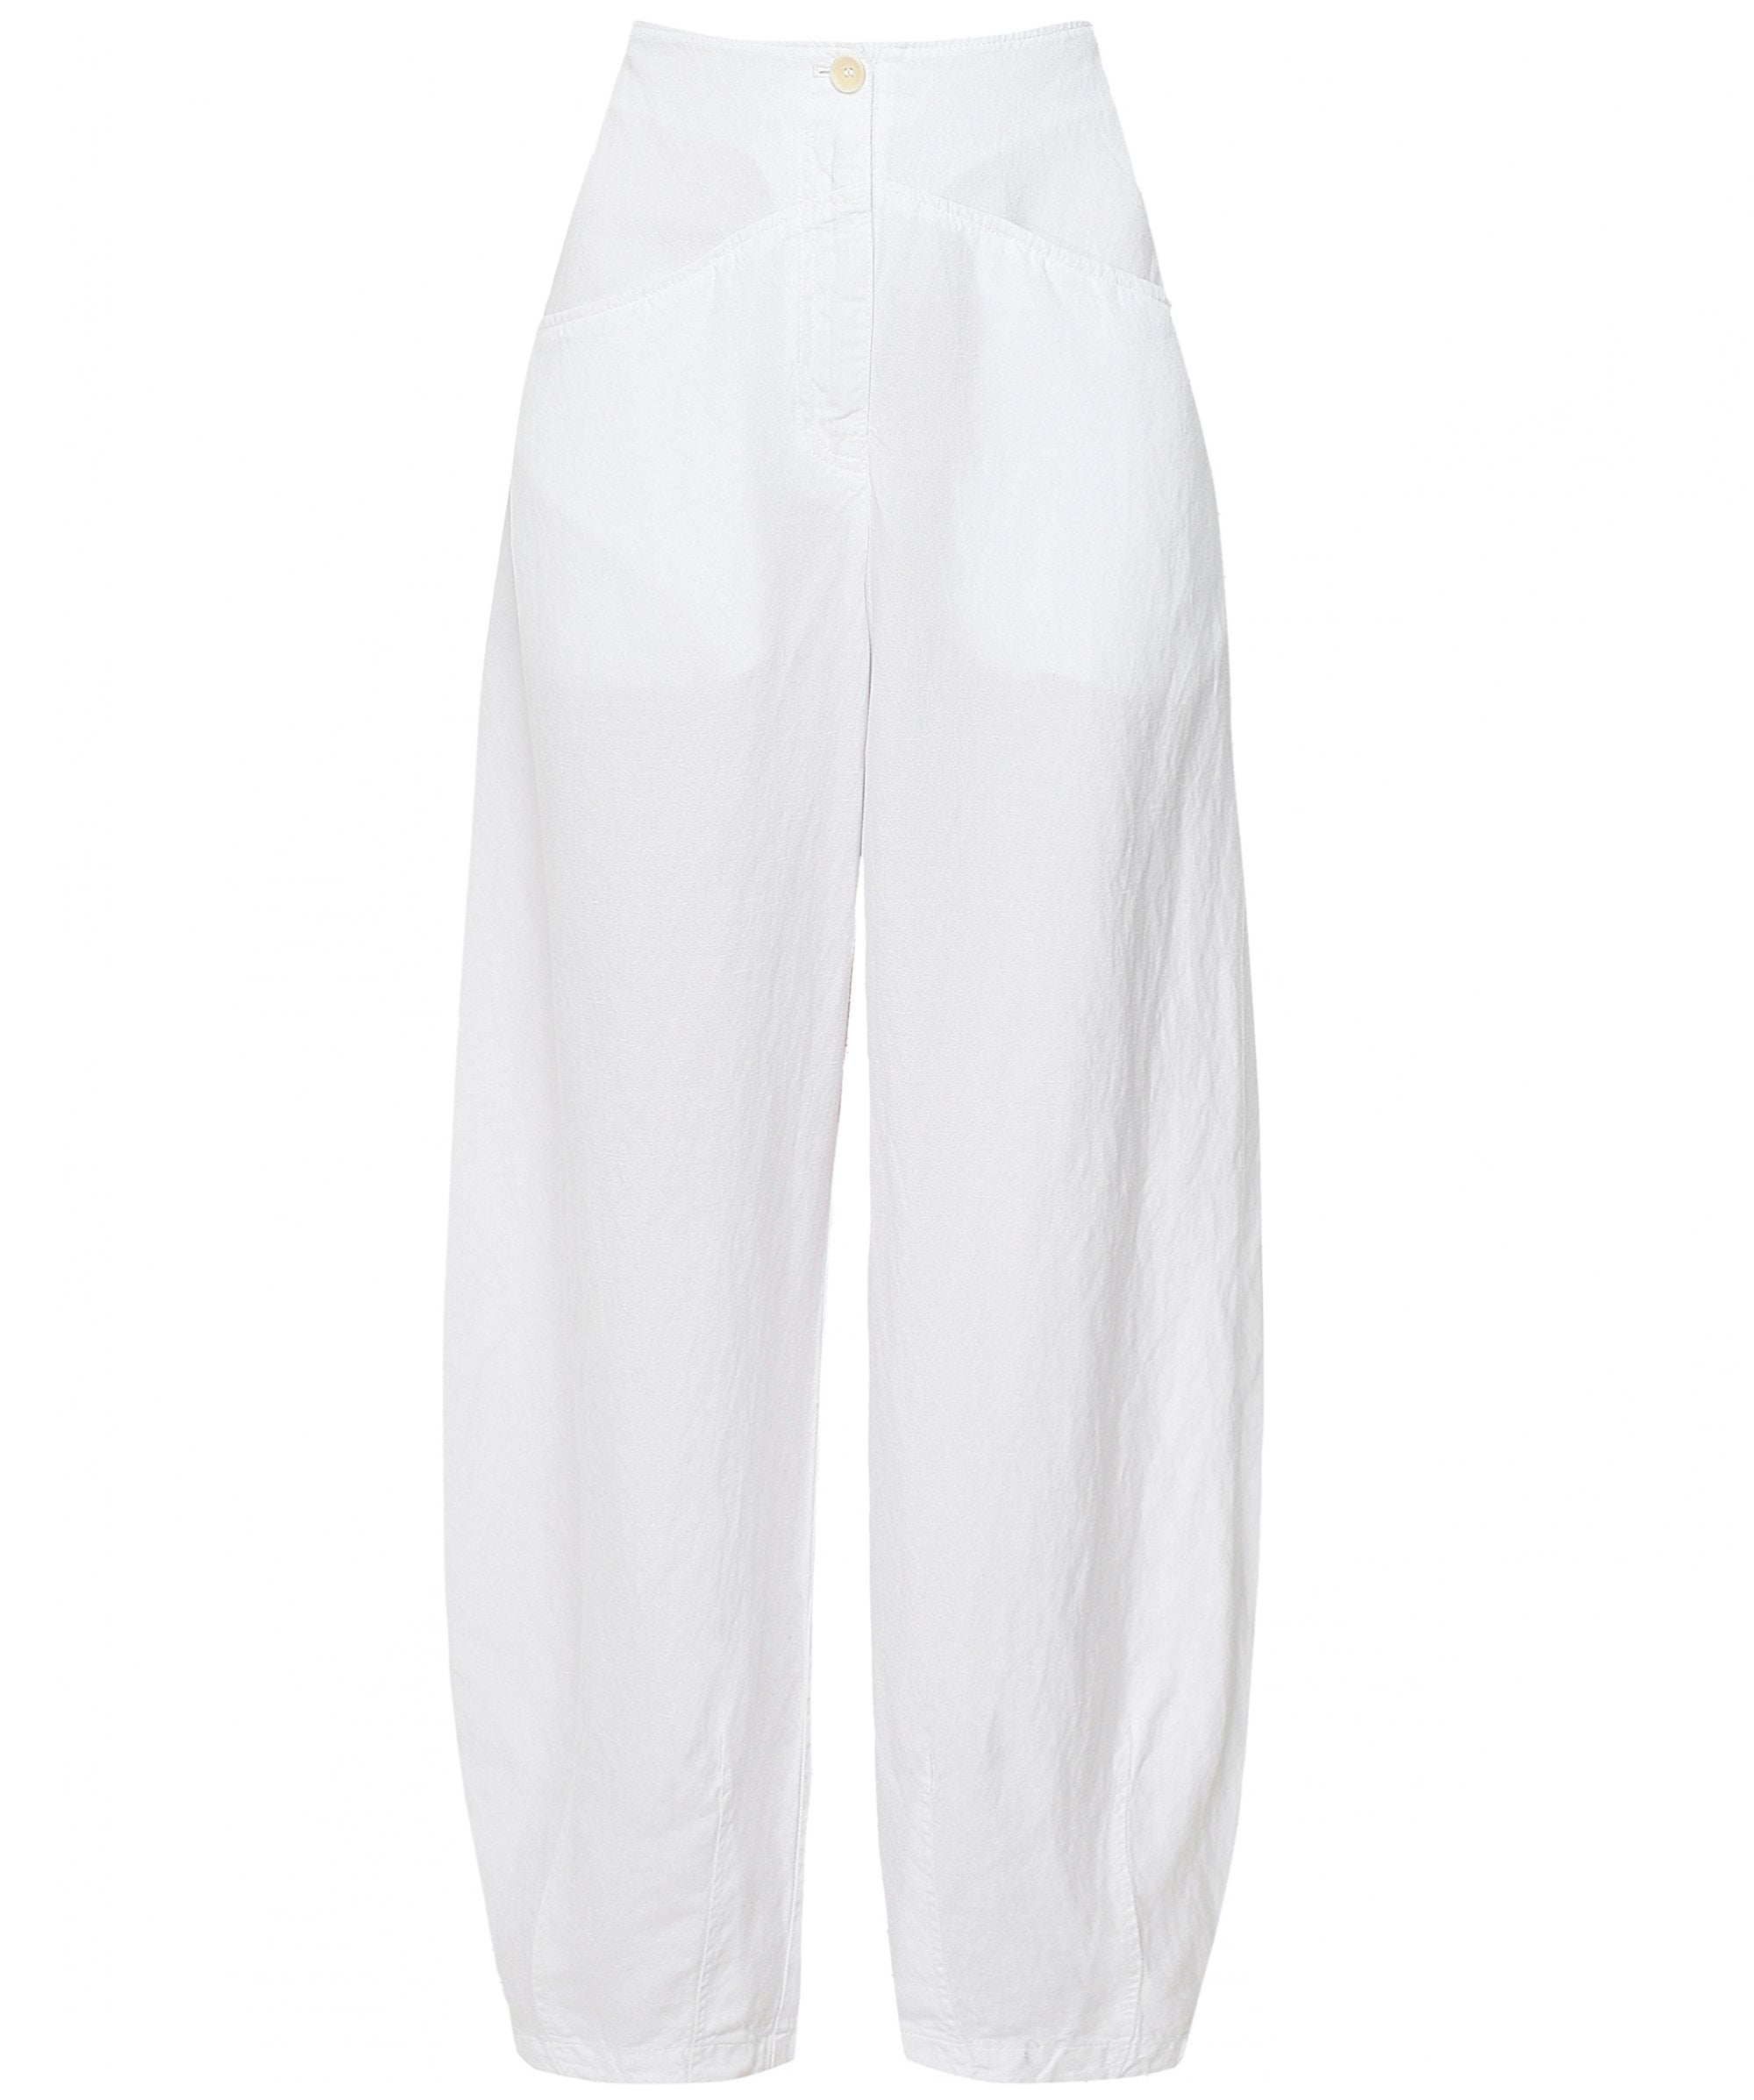 This is an image of some women's white trousers